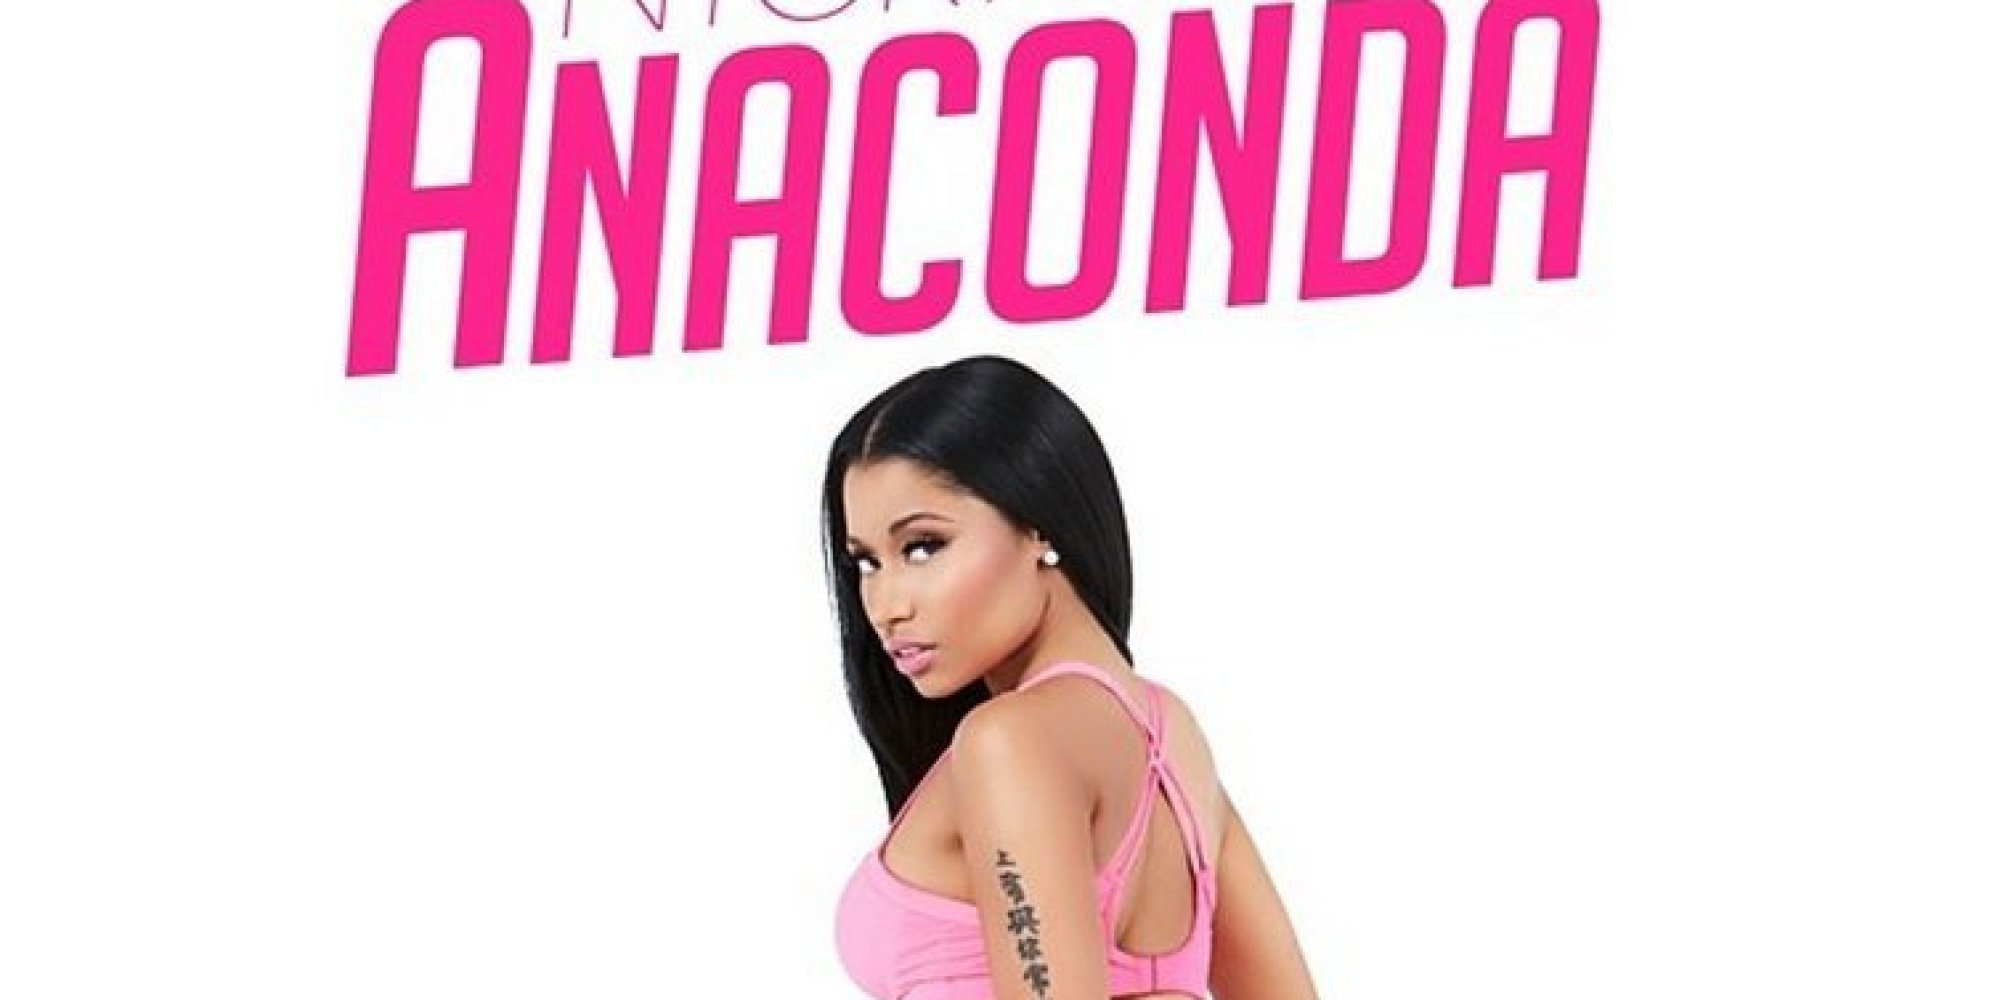 Nicki Minaj's 'Anaconda' Cover Art Is NSFW Unless You Work ...